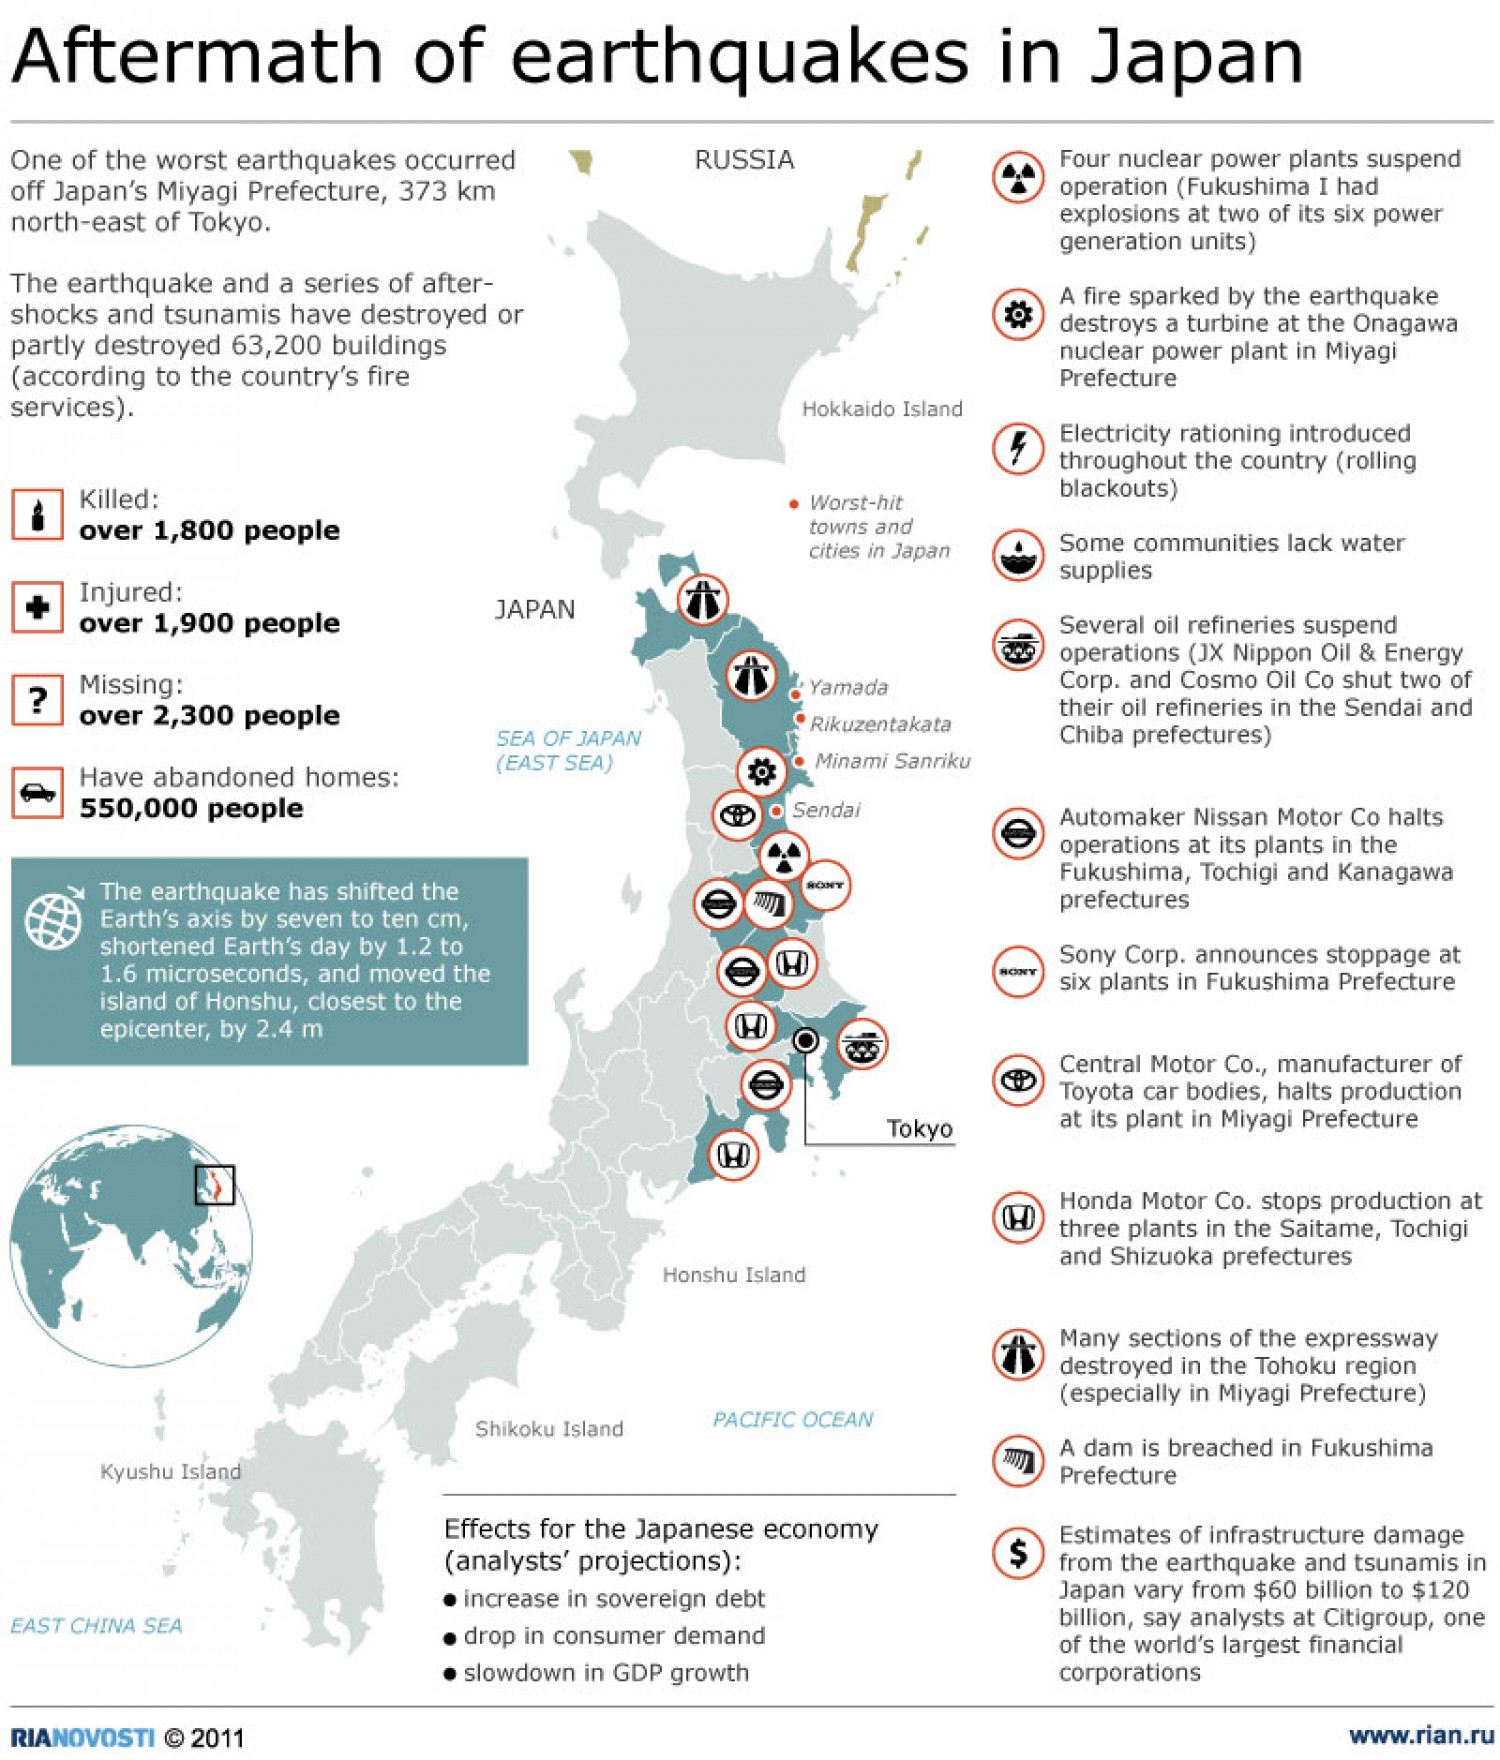 Aftermath of Earthquakes in Japan Infographic